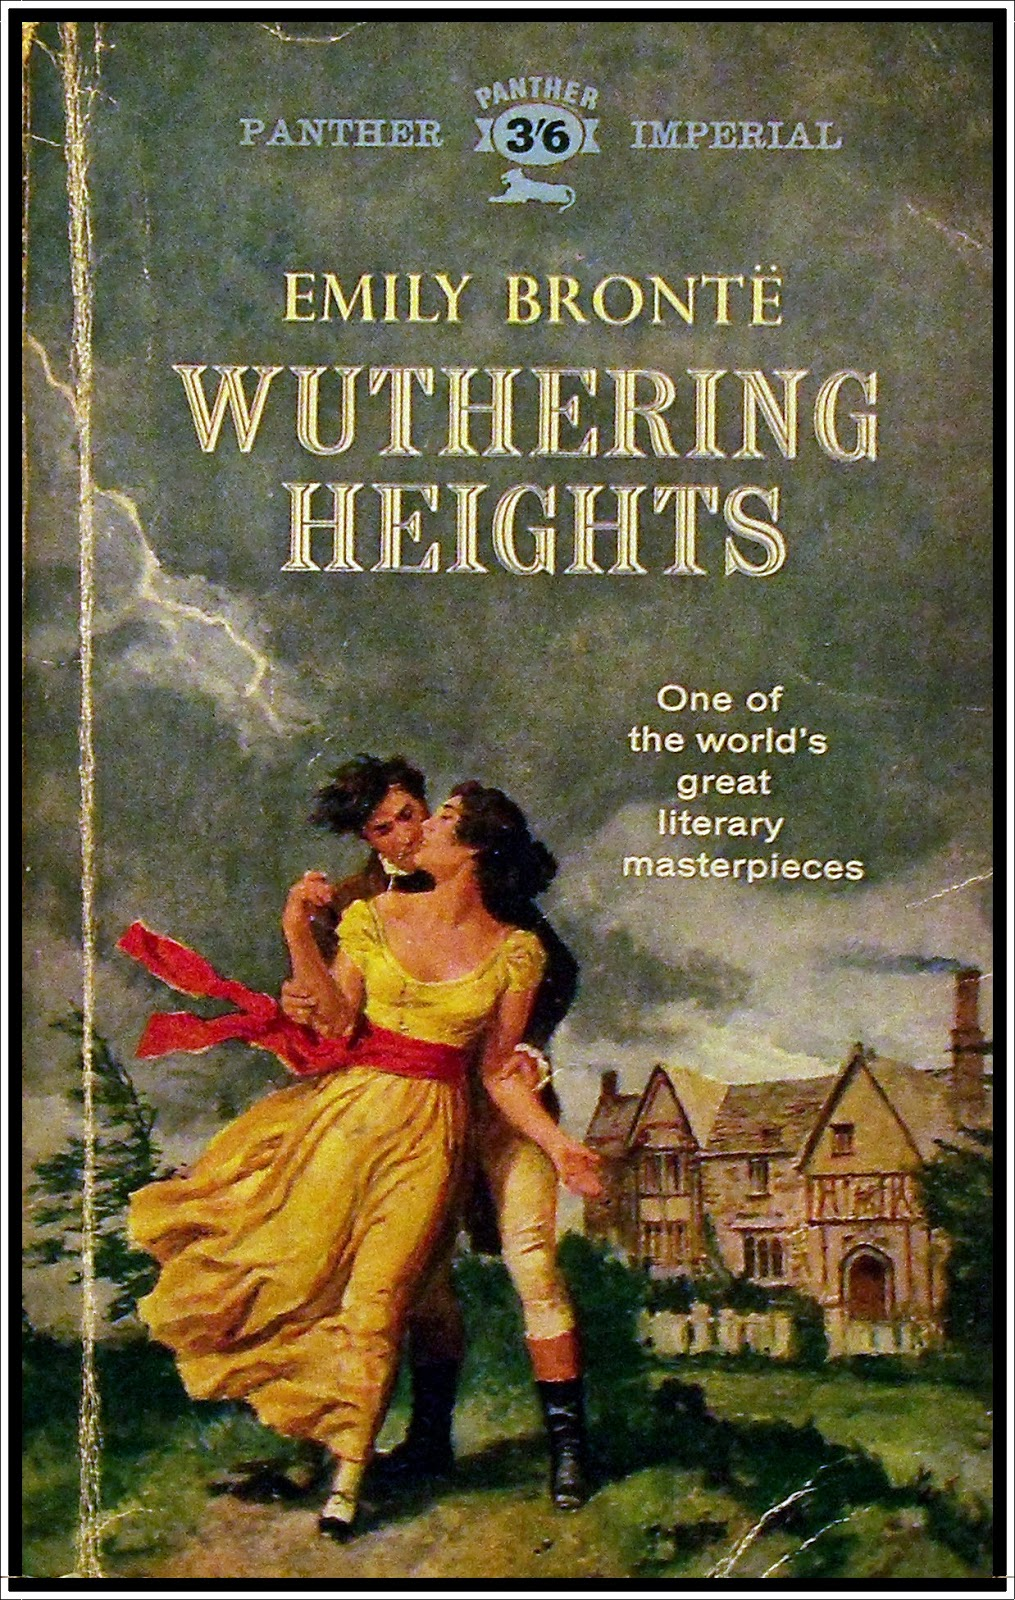 """a summary of the love story in the novel wuthering heights by emily bronte Home » reading » fifty shades of heathcliff: why wuthering heights  i married him,"""" wuthering heights is a """"love story"""" only in  emily bronte, feminism."""